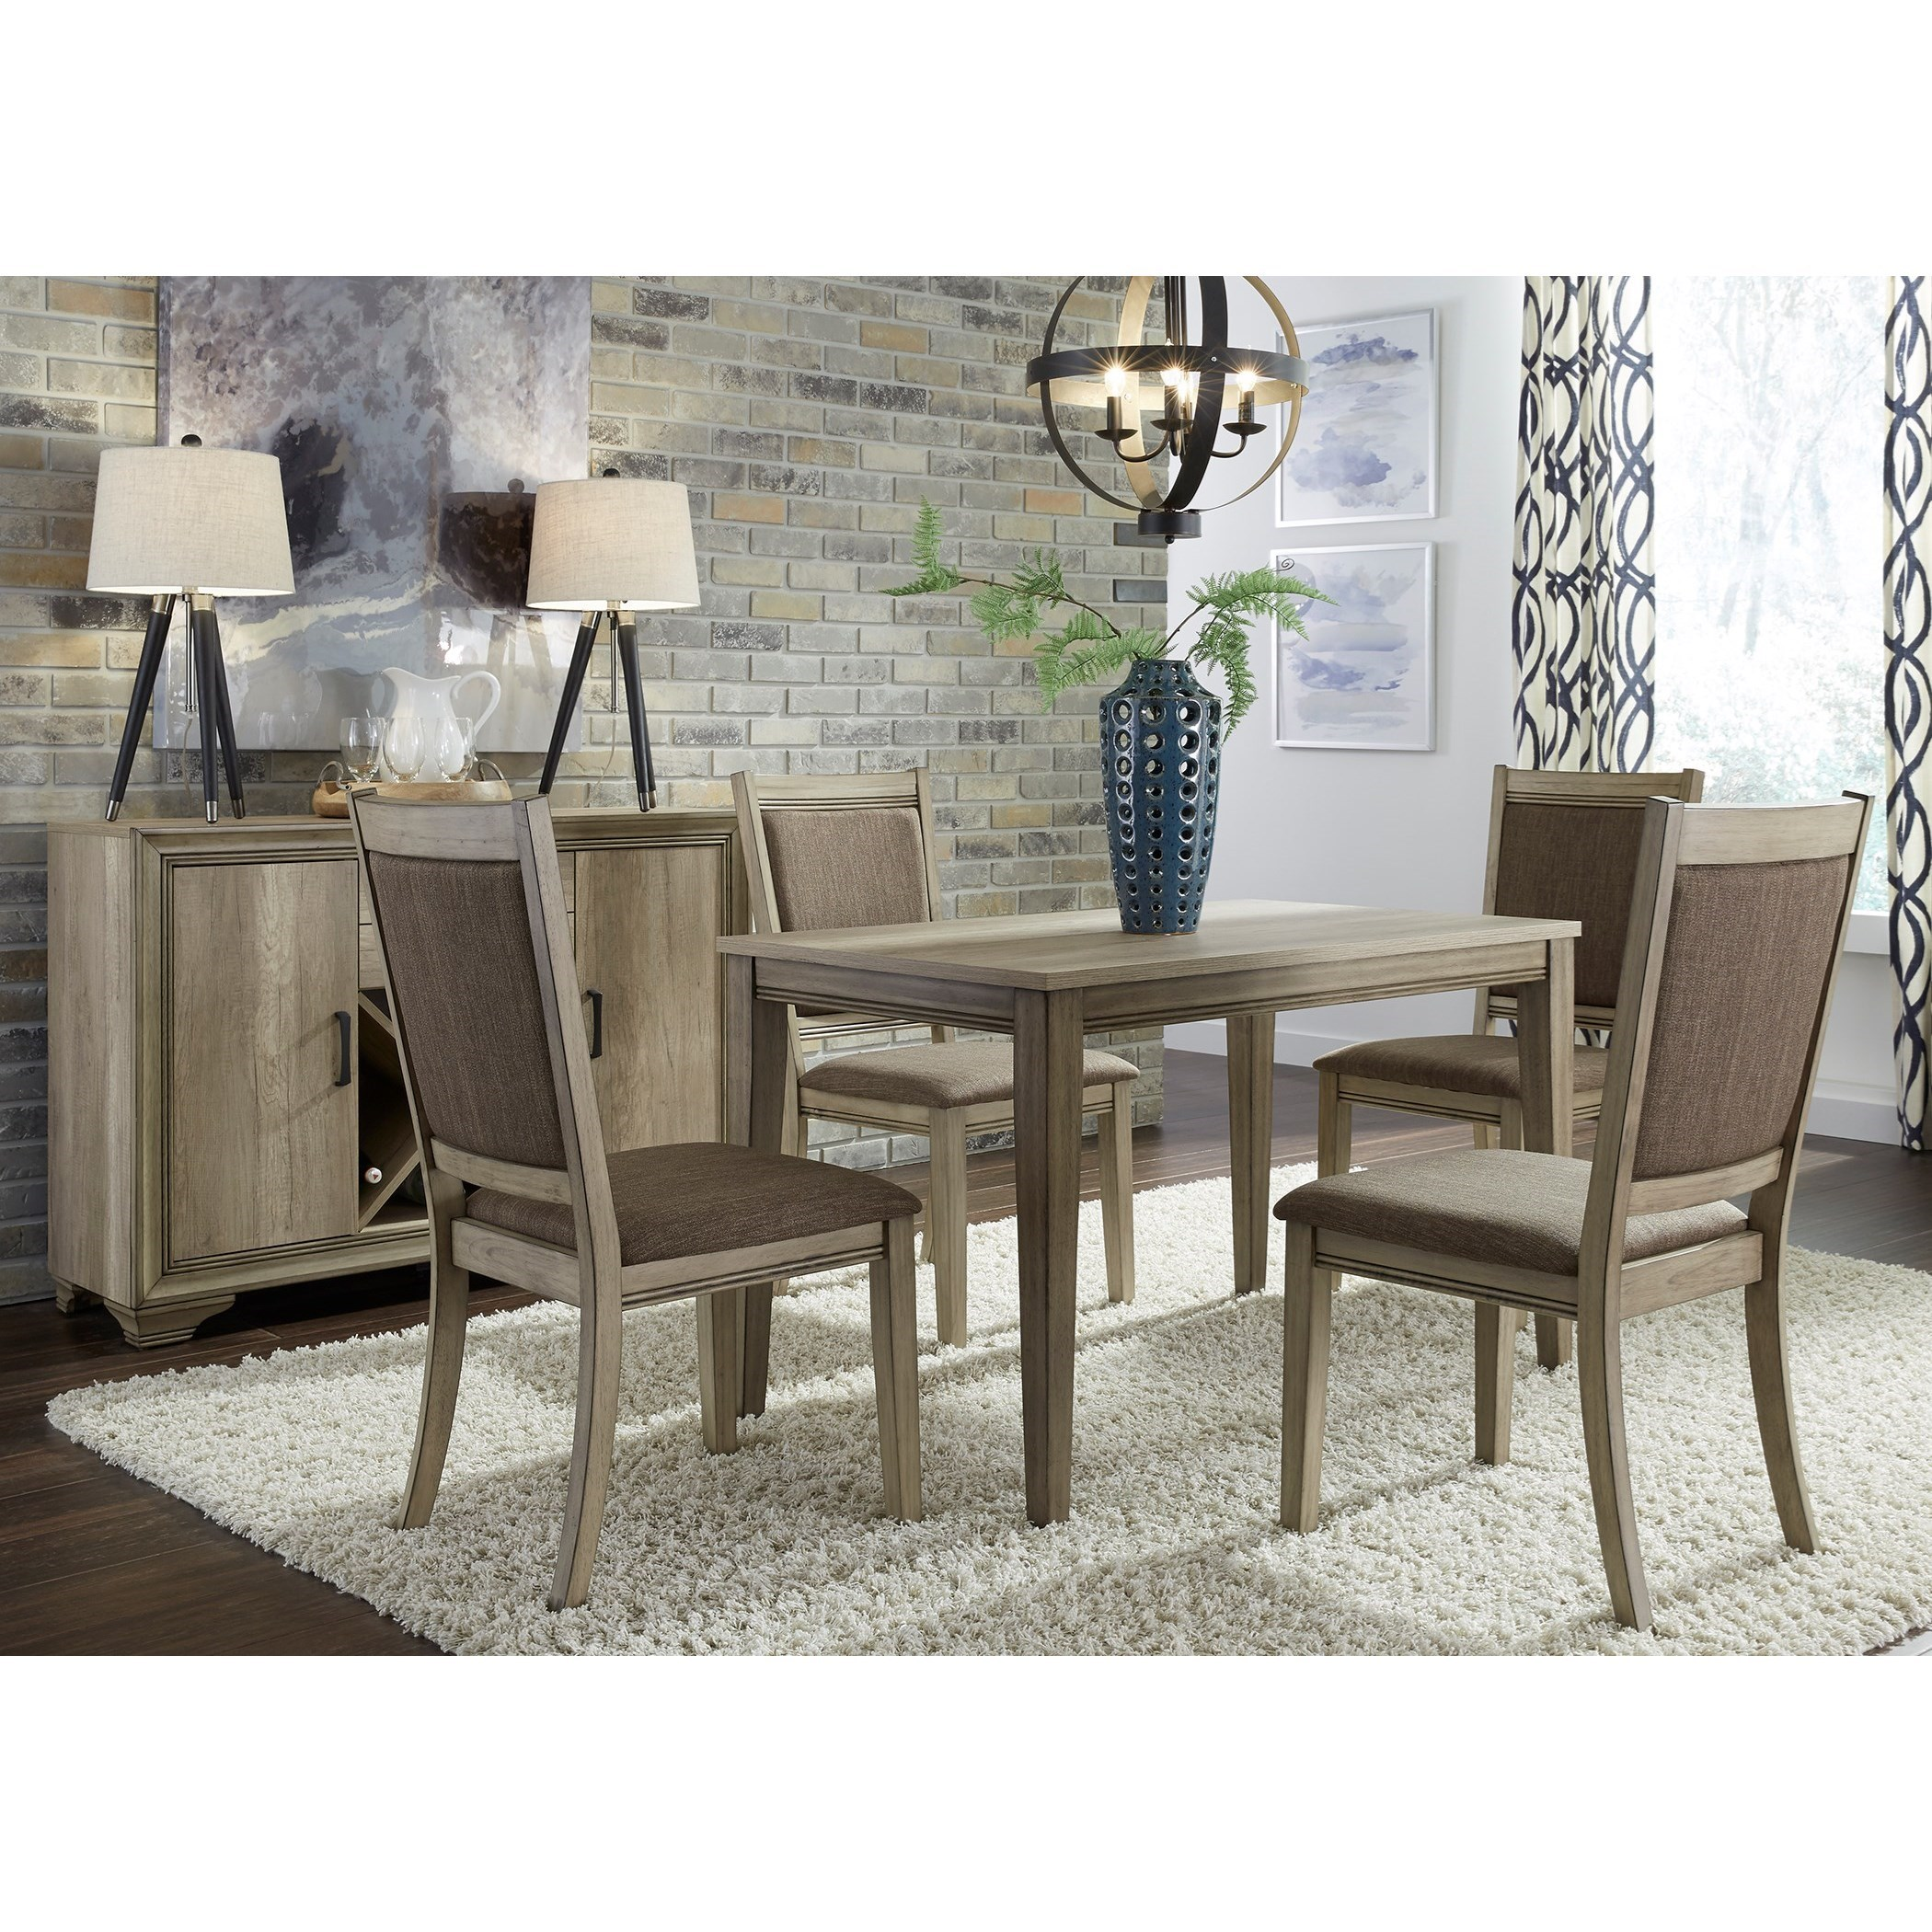 Liberty Furniture Sun Valley 5 Piece Cafe Table Set with Upholstered Chairs  sc 1 st  Royal Furniture & Liberty Furniture Sun Valley 5 Piece Cafe Table Set with Upholstered ...